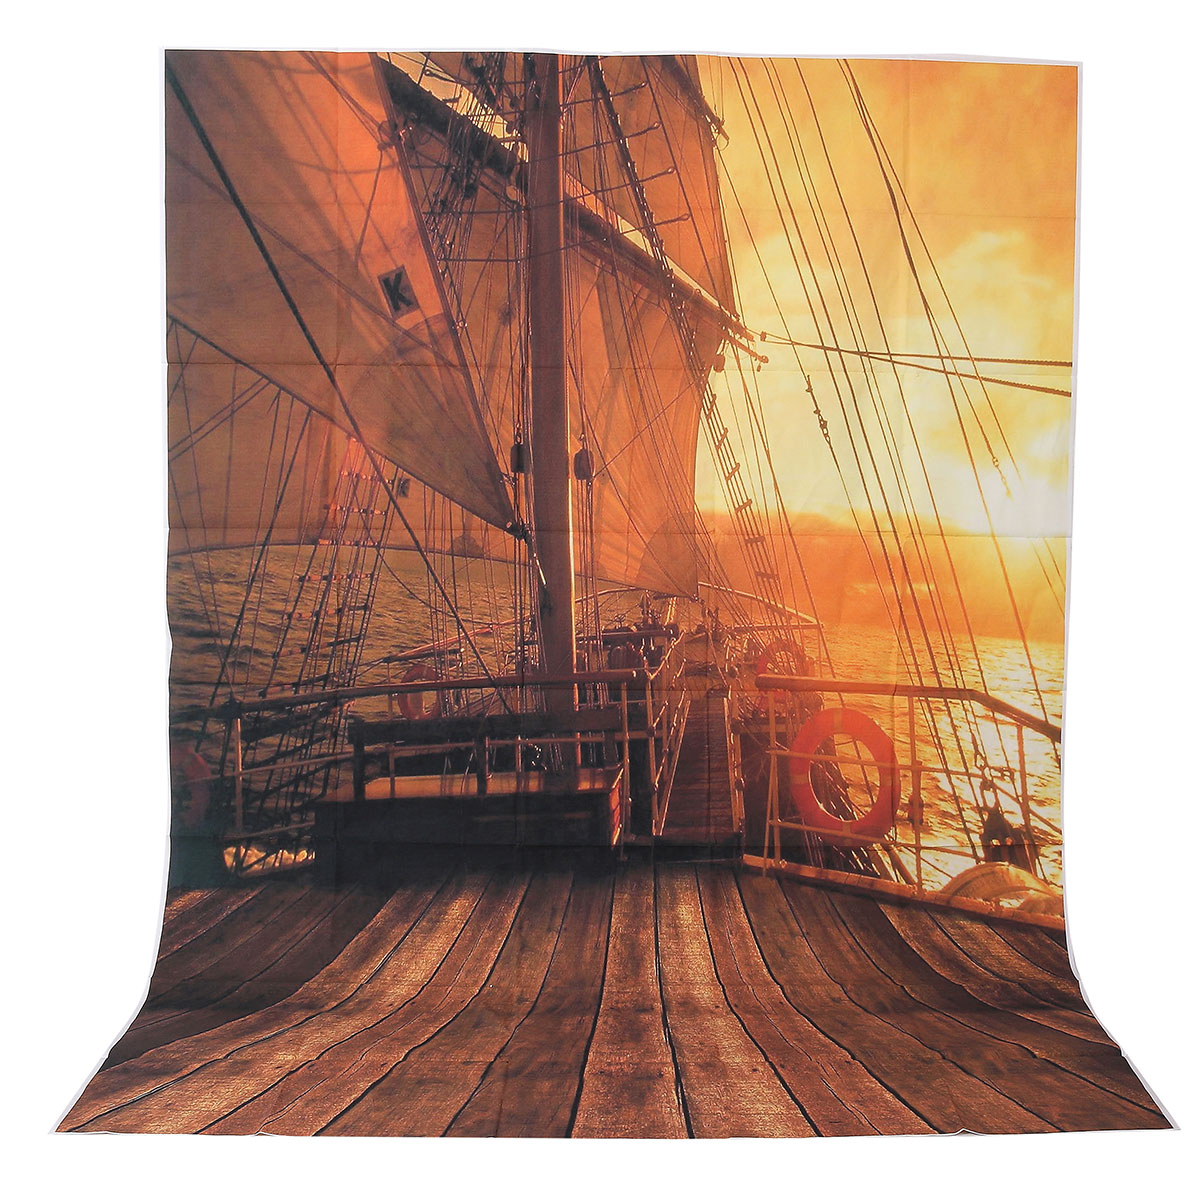 5x7FT Vinyl Sunset Pirate Wood Ship Photography Backdrop Background Studio Prop